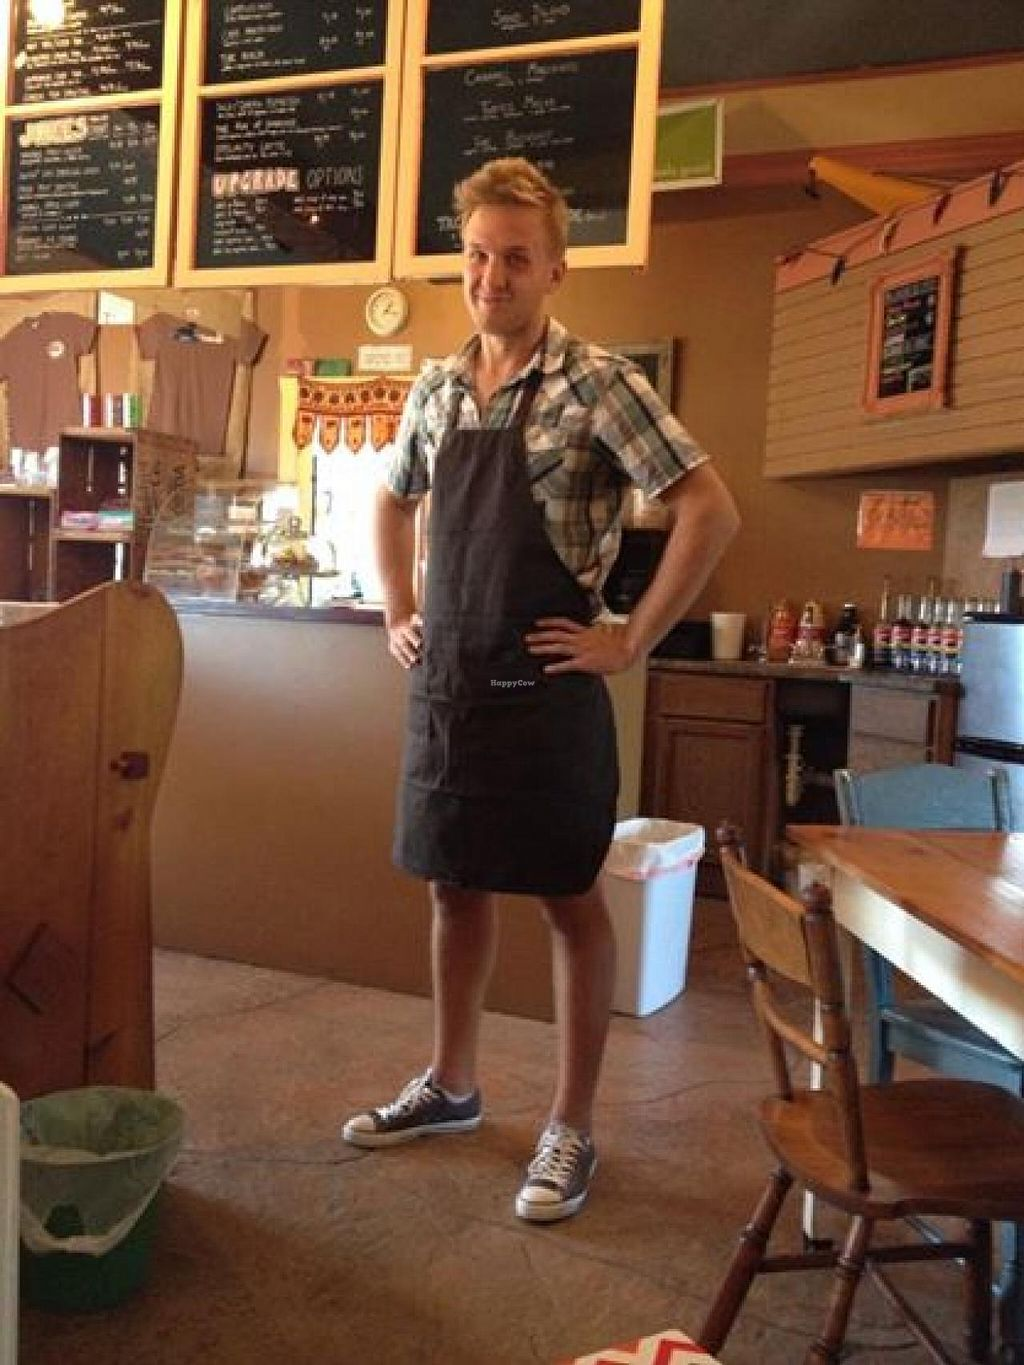 """Photo of Steep Creek Cafe  by <a href=""""/members/profile/community"""">community</a> <br/>Steep Creek Cafe <br/> July 30, 2014  - <a href='/contact/abuse/image/49335/75458'>Report</a>"""